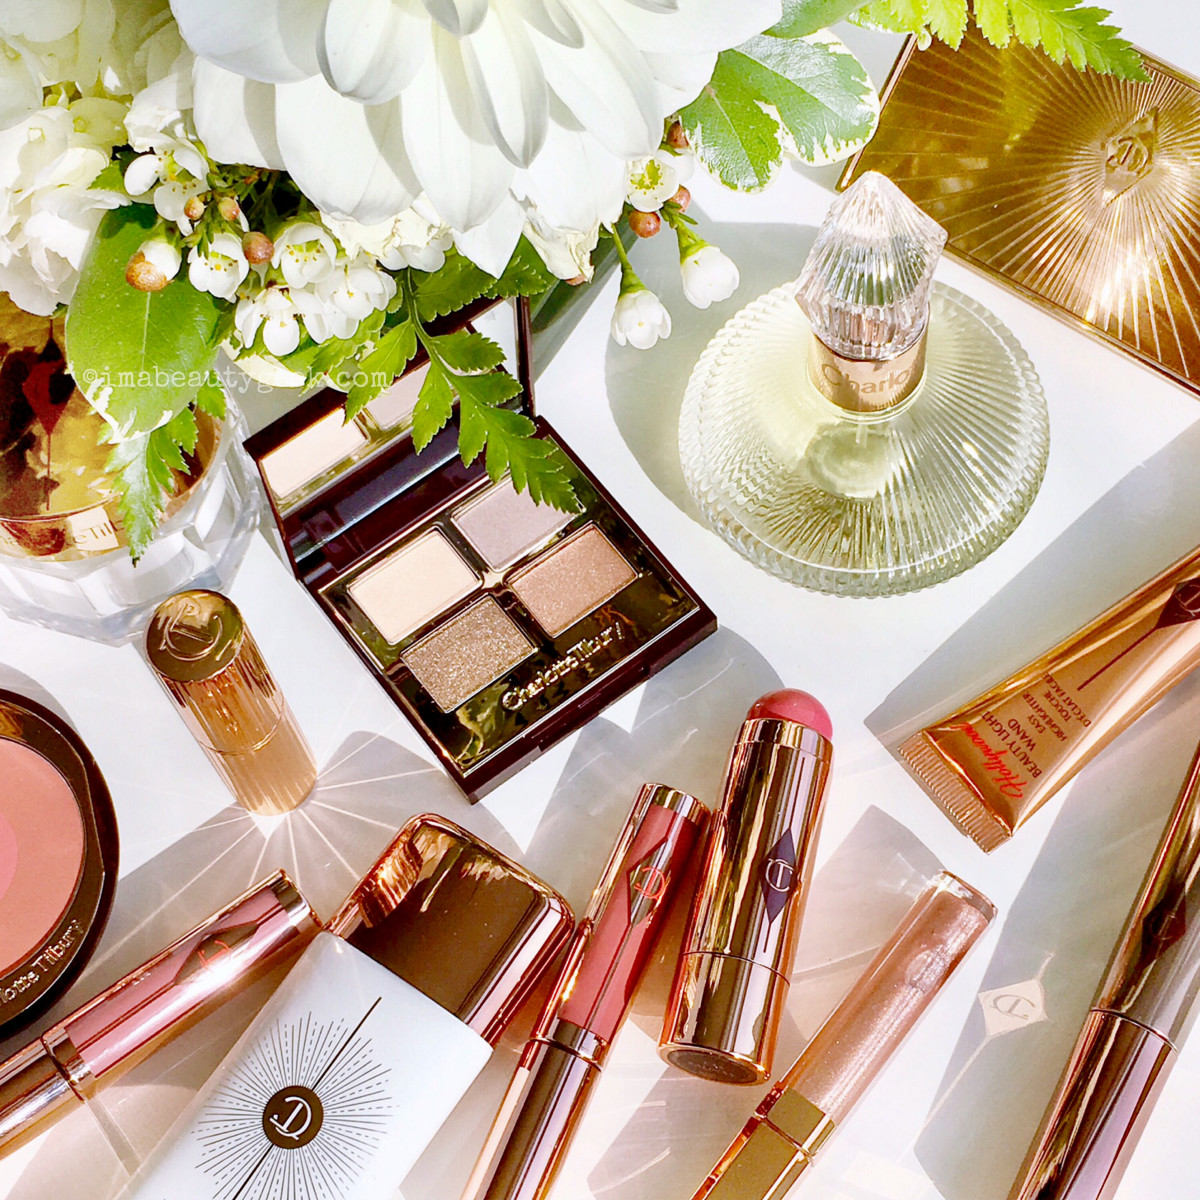 Charlotte Tilbury: different Black Friday/Cyber Monday deals until Monday